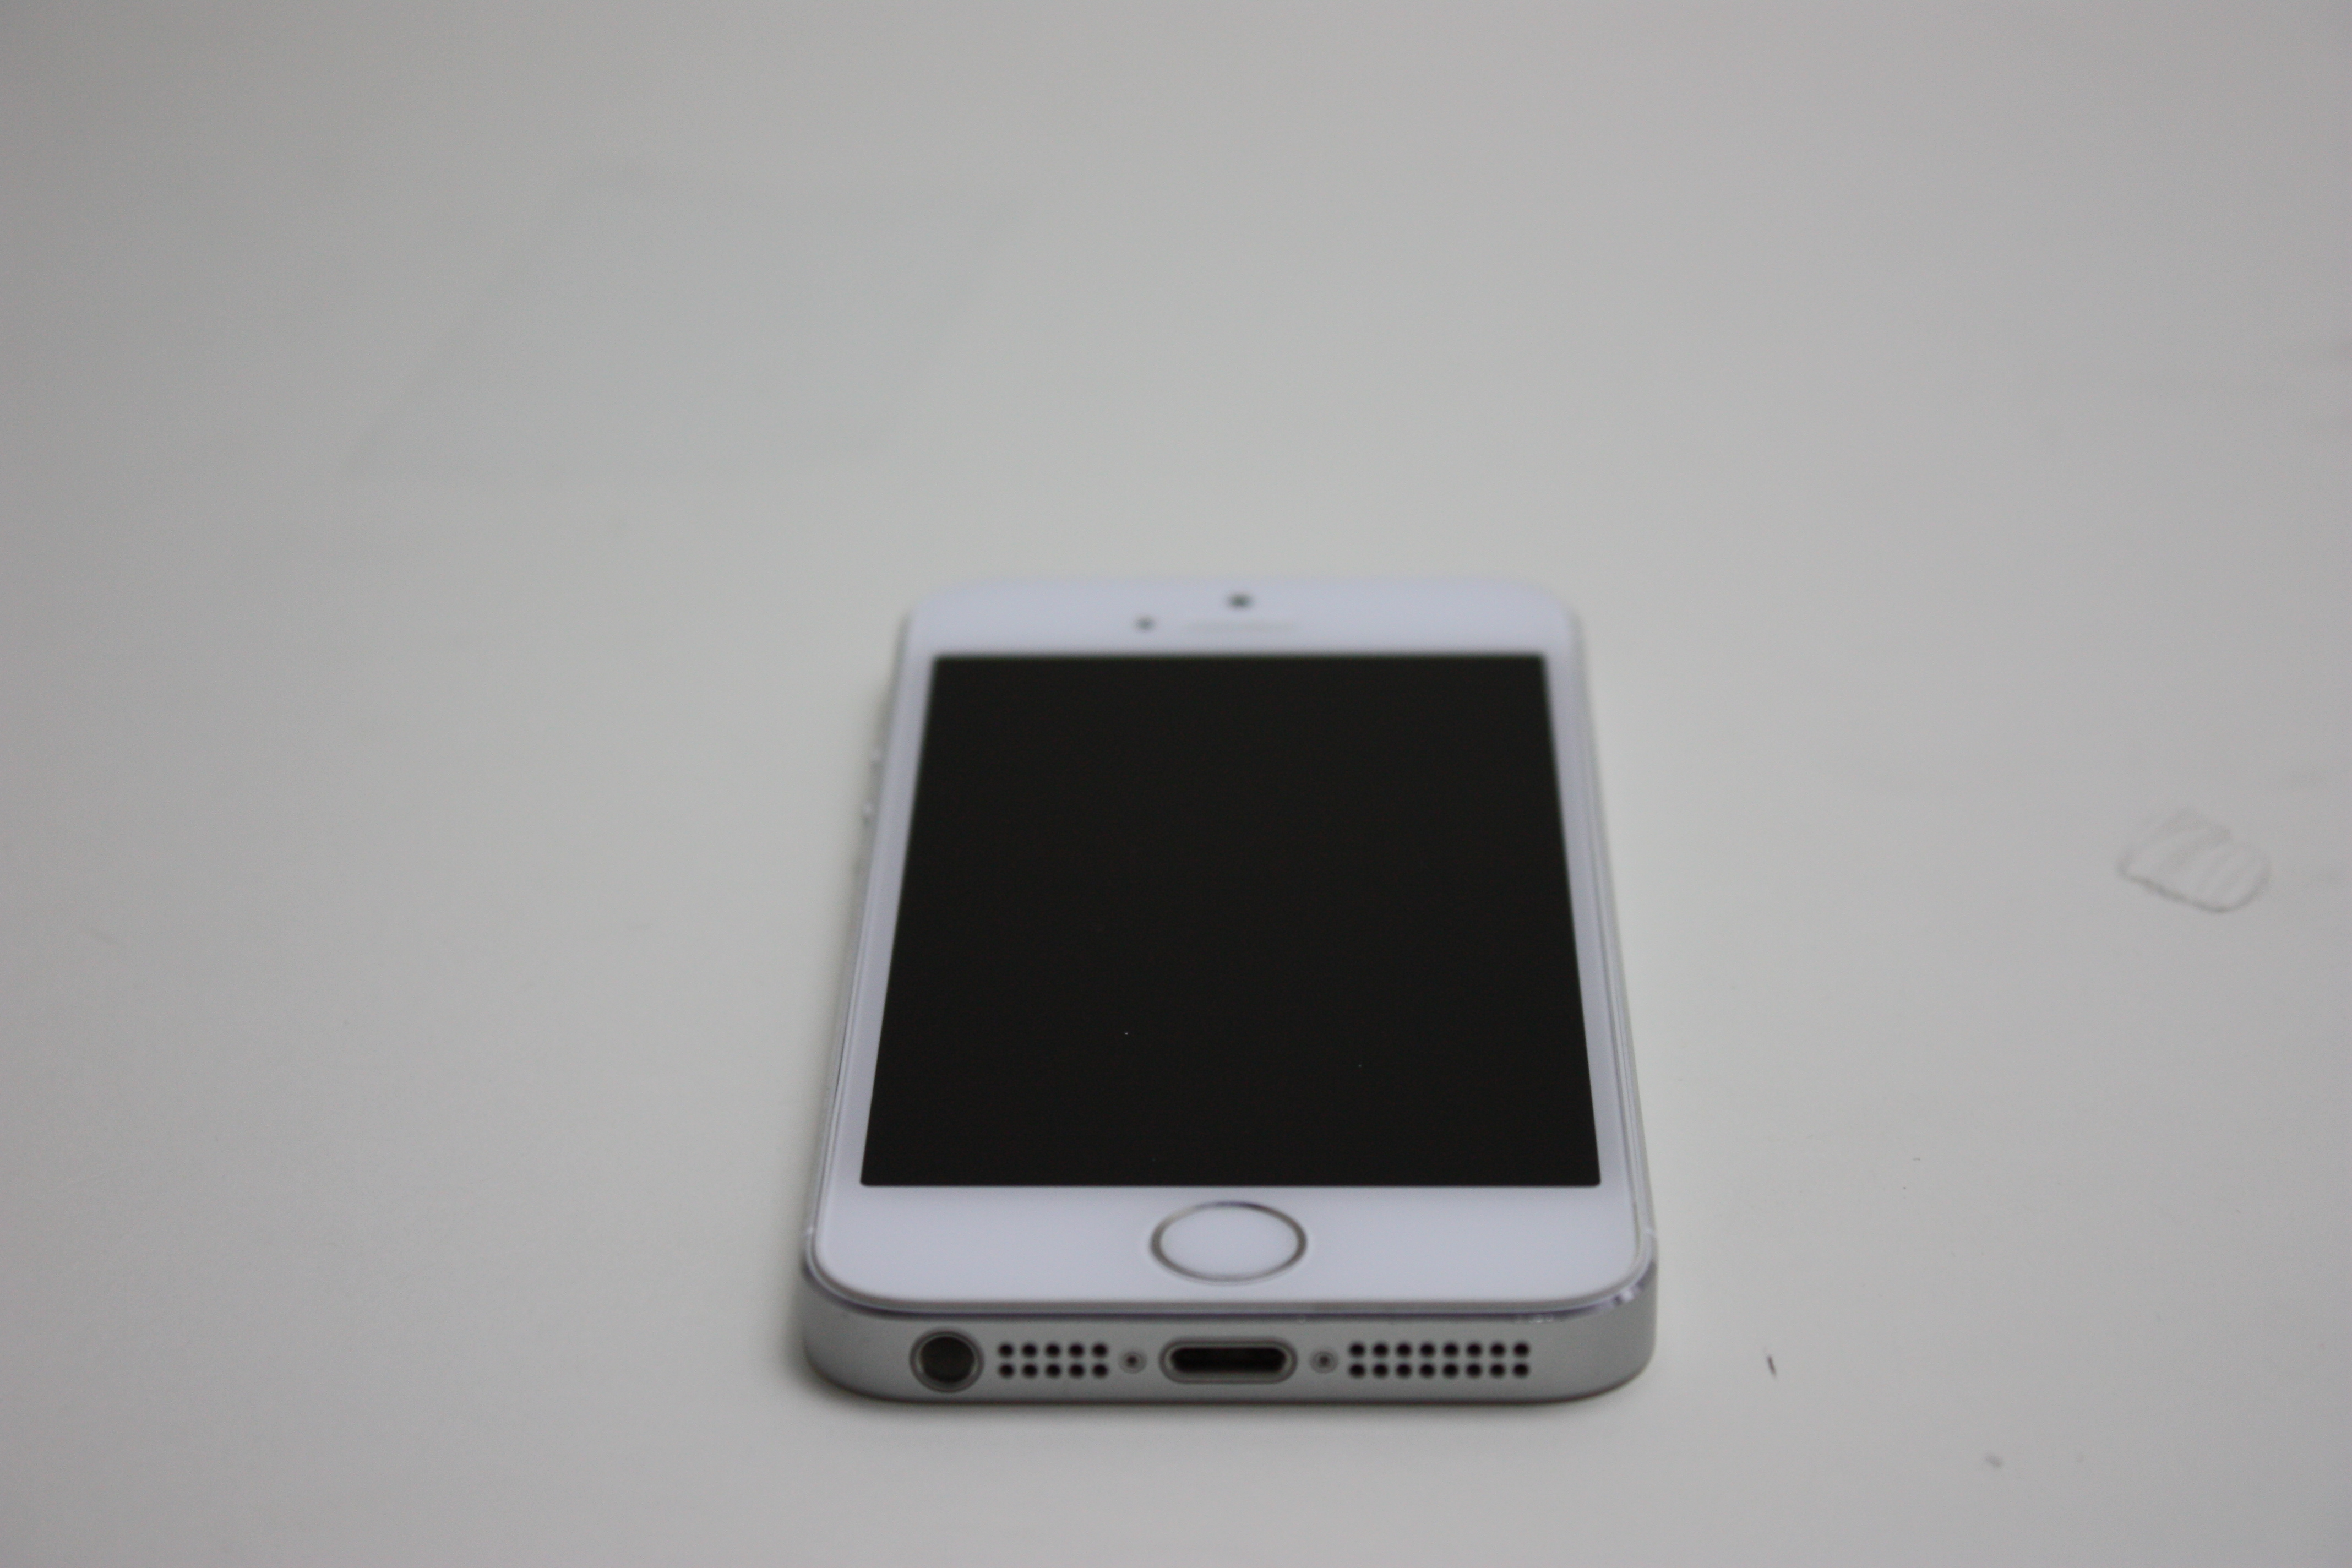 iPhone 5S, 16 GB, White/Silver, Product age: 40 months, image 1